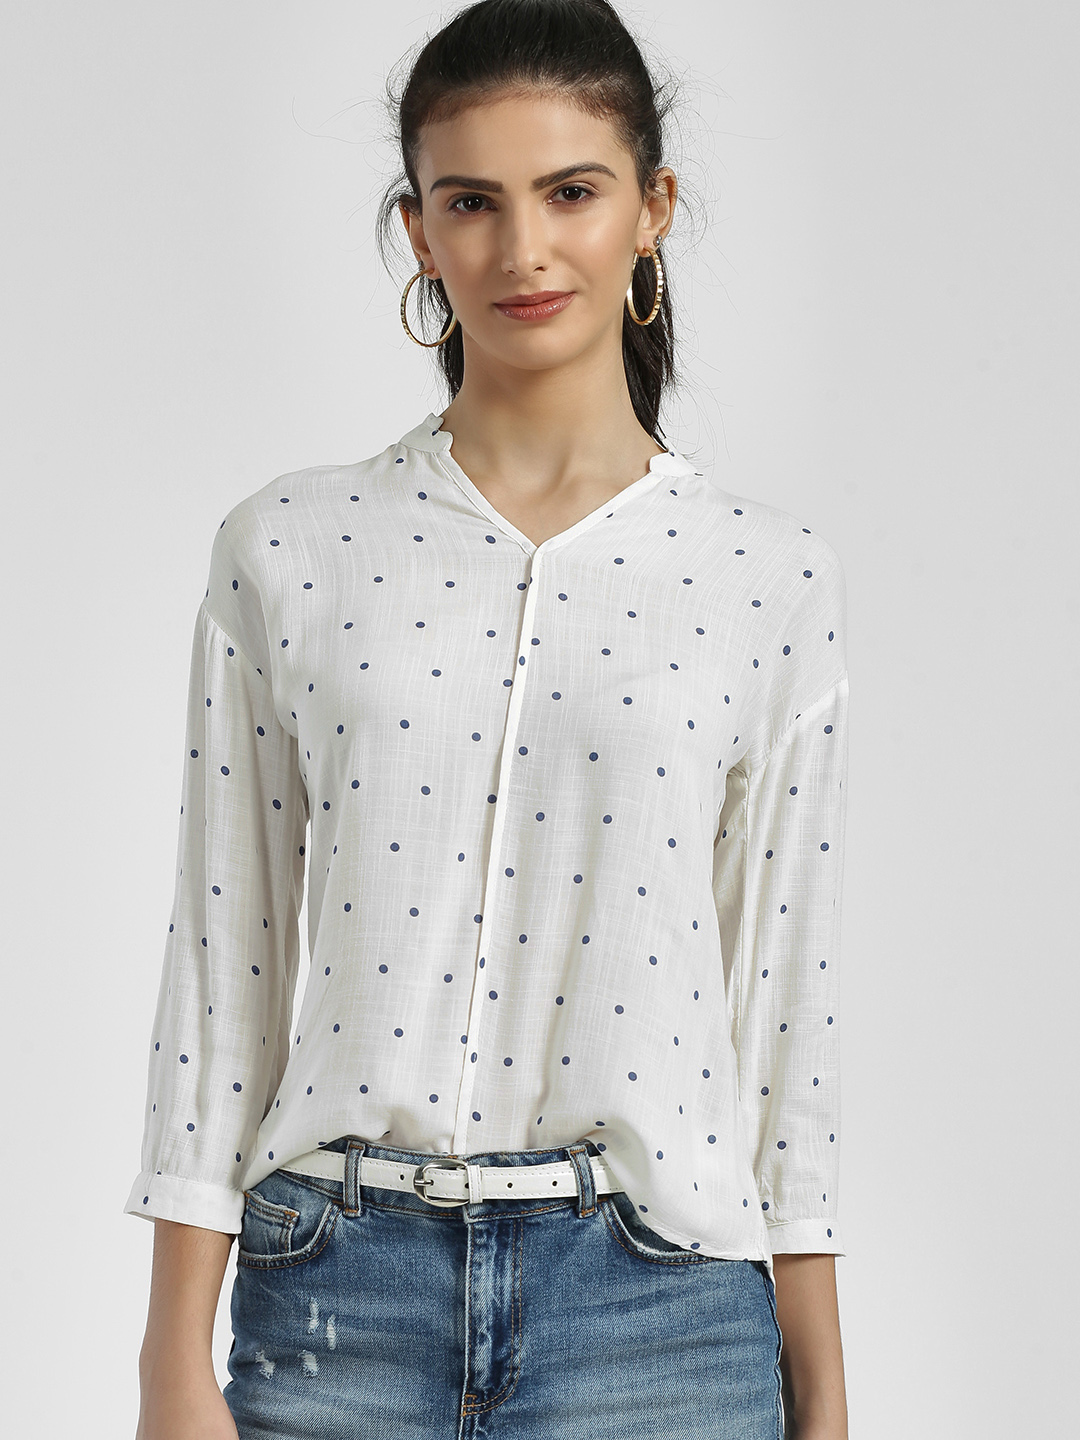 Lee Cooper White Polka Dot Mandarin Collar Blouse 1